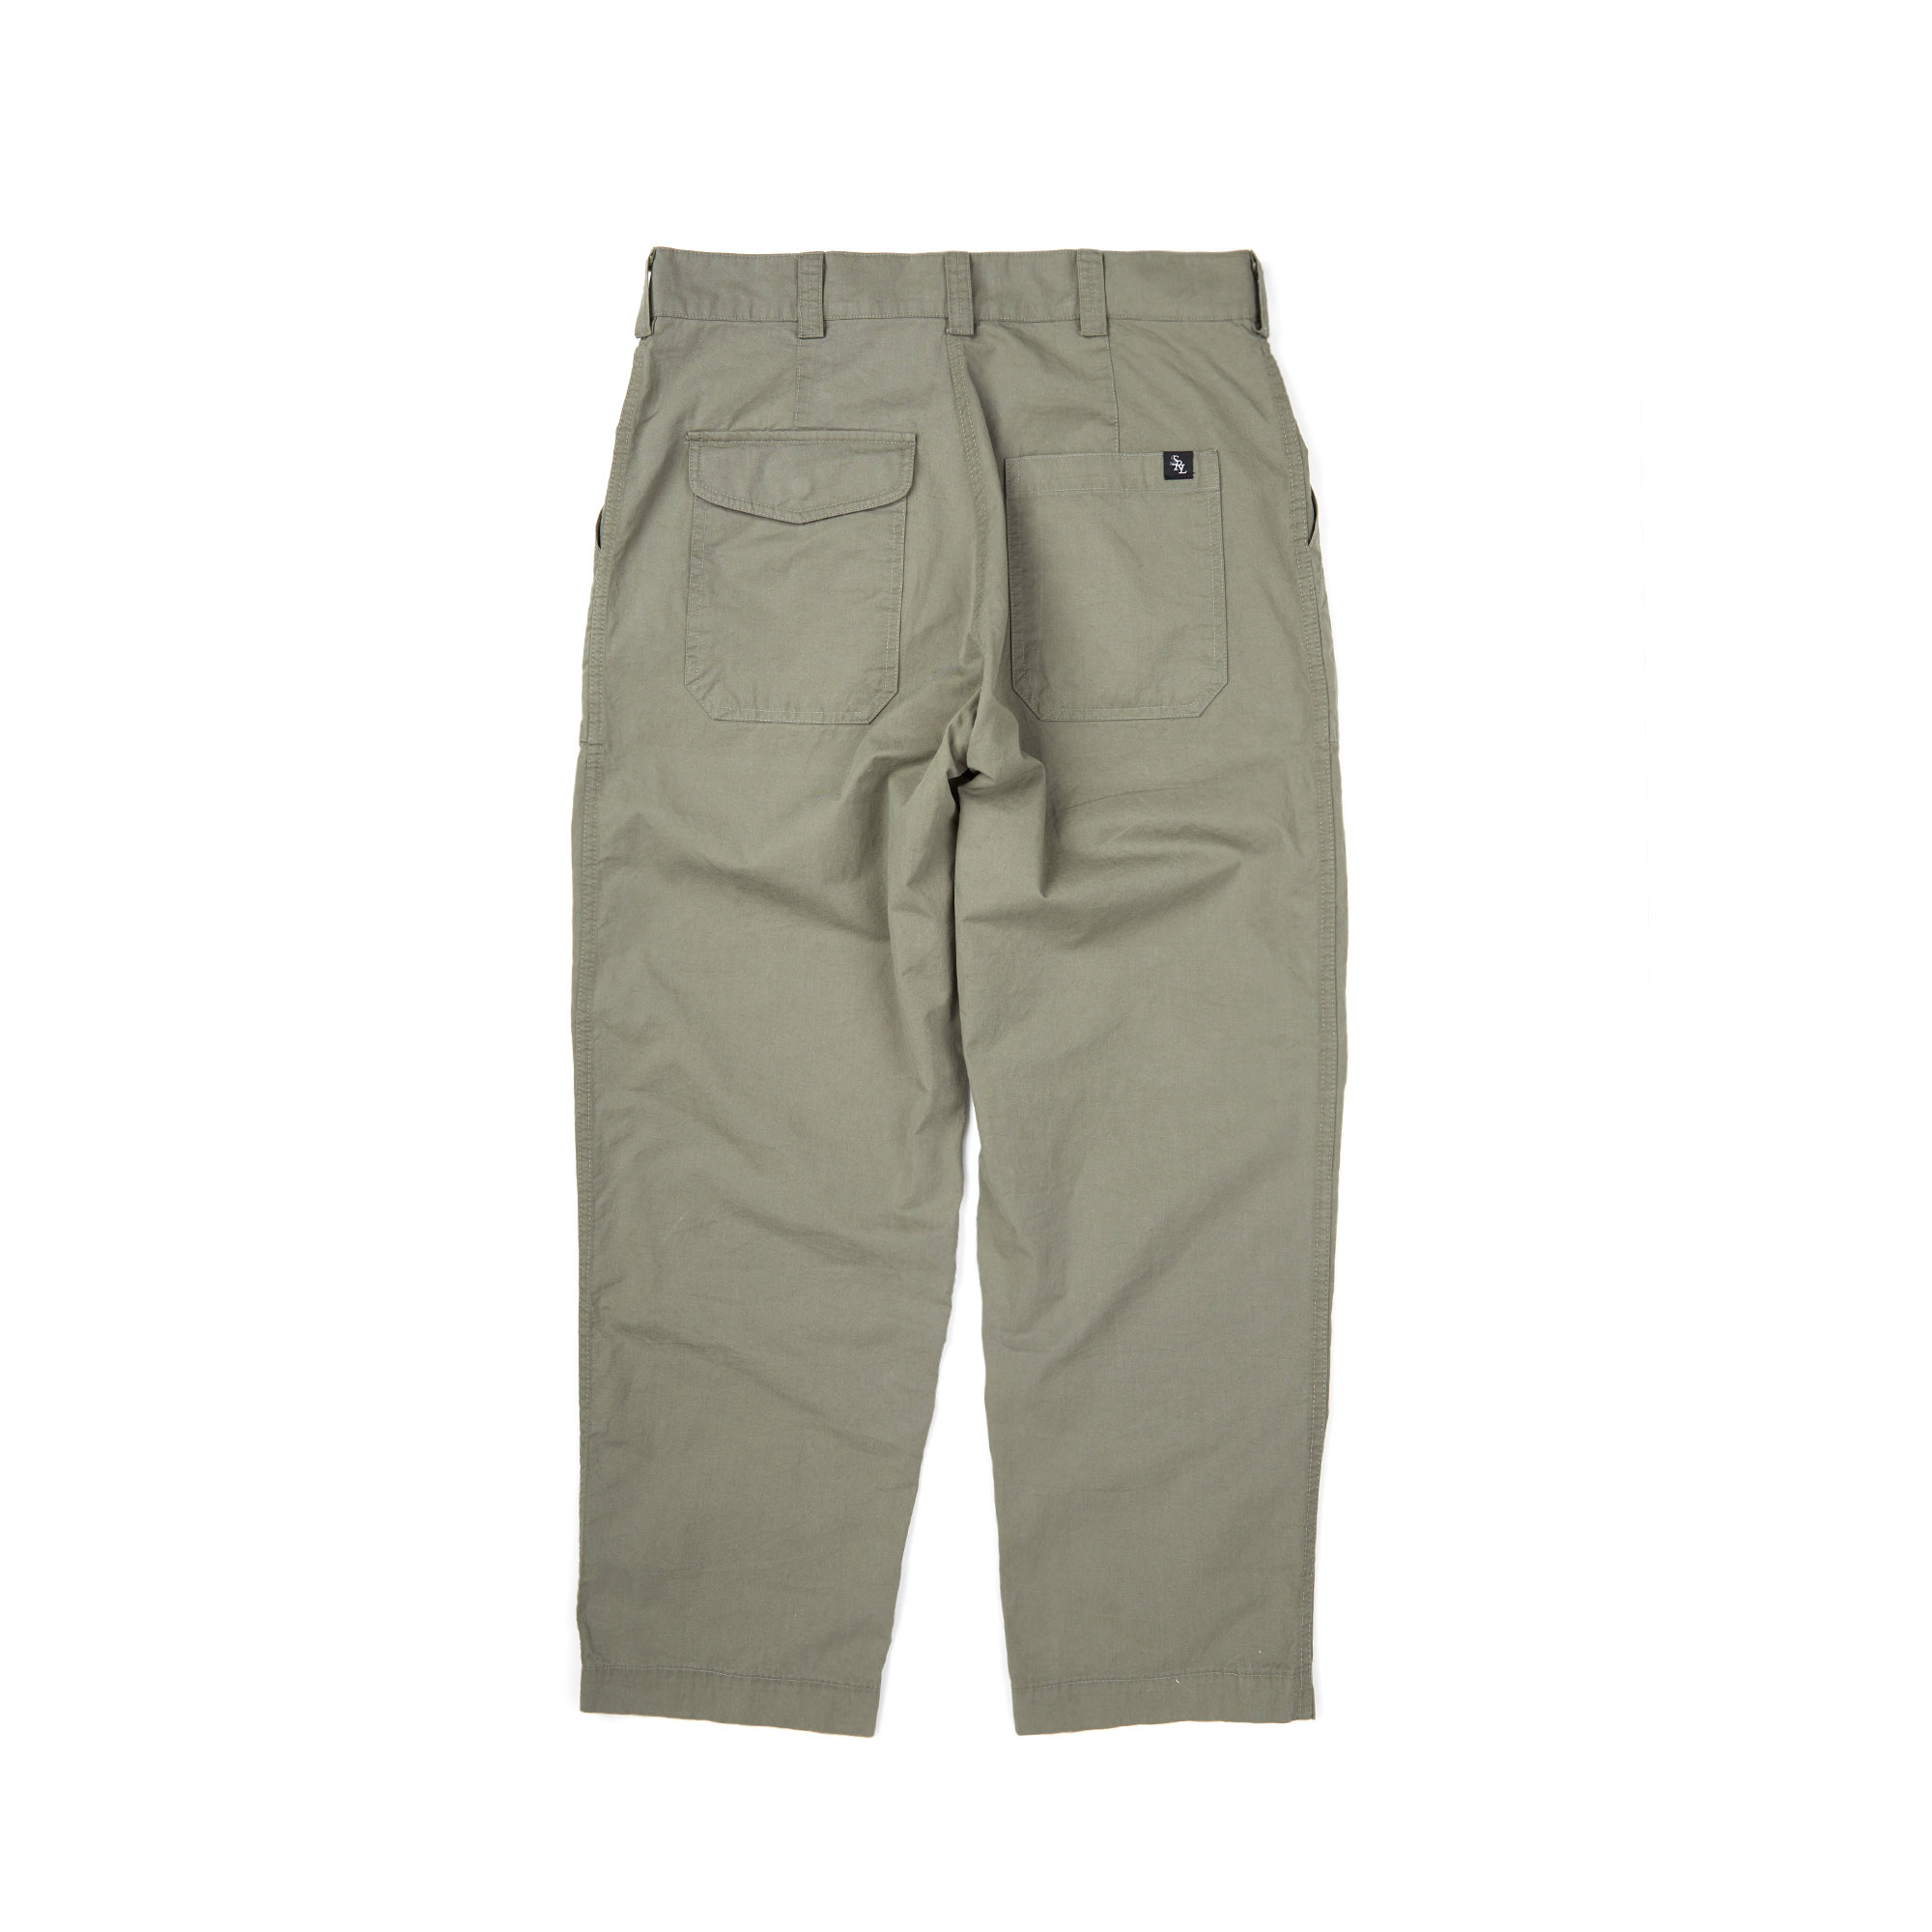 wide fatigue pants / khaki